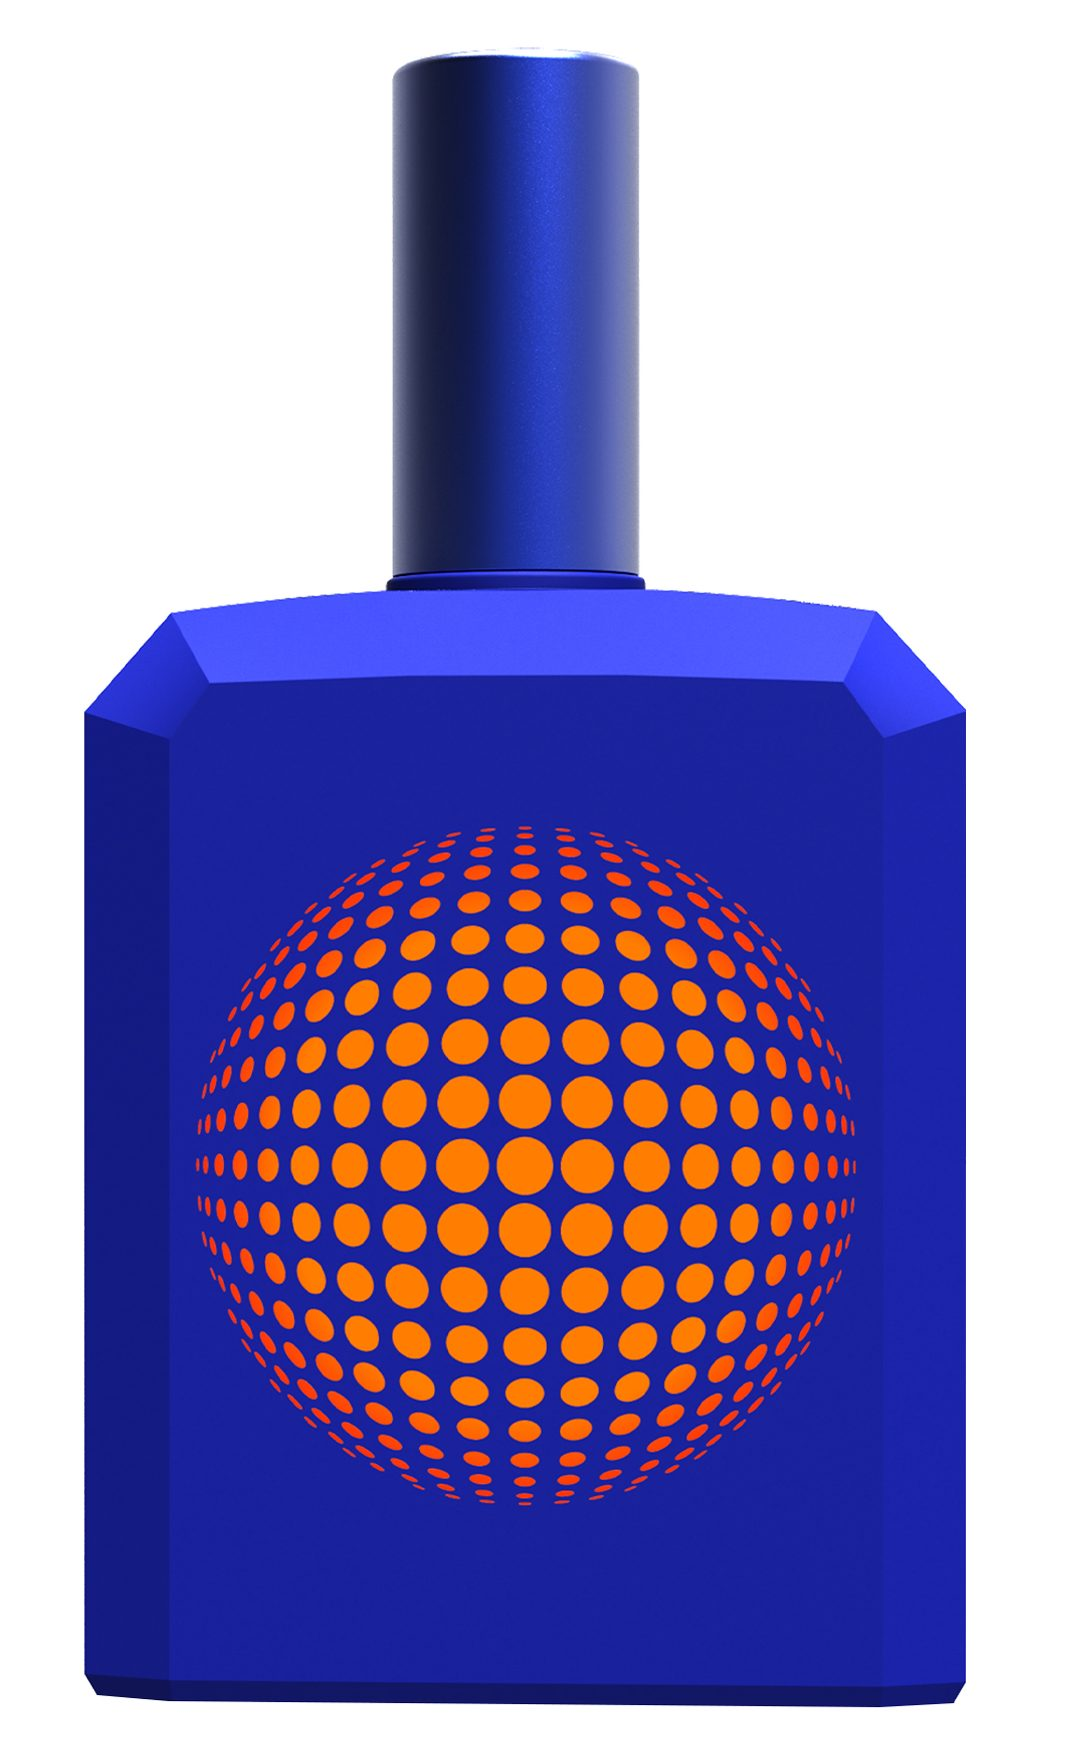 HISTOIRE_DU_PARFUMS_THIS_IS_NOT_A_BLUE_BOTTLE